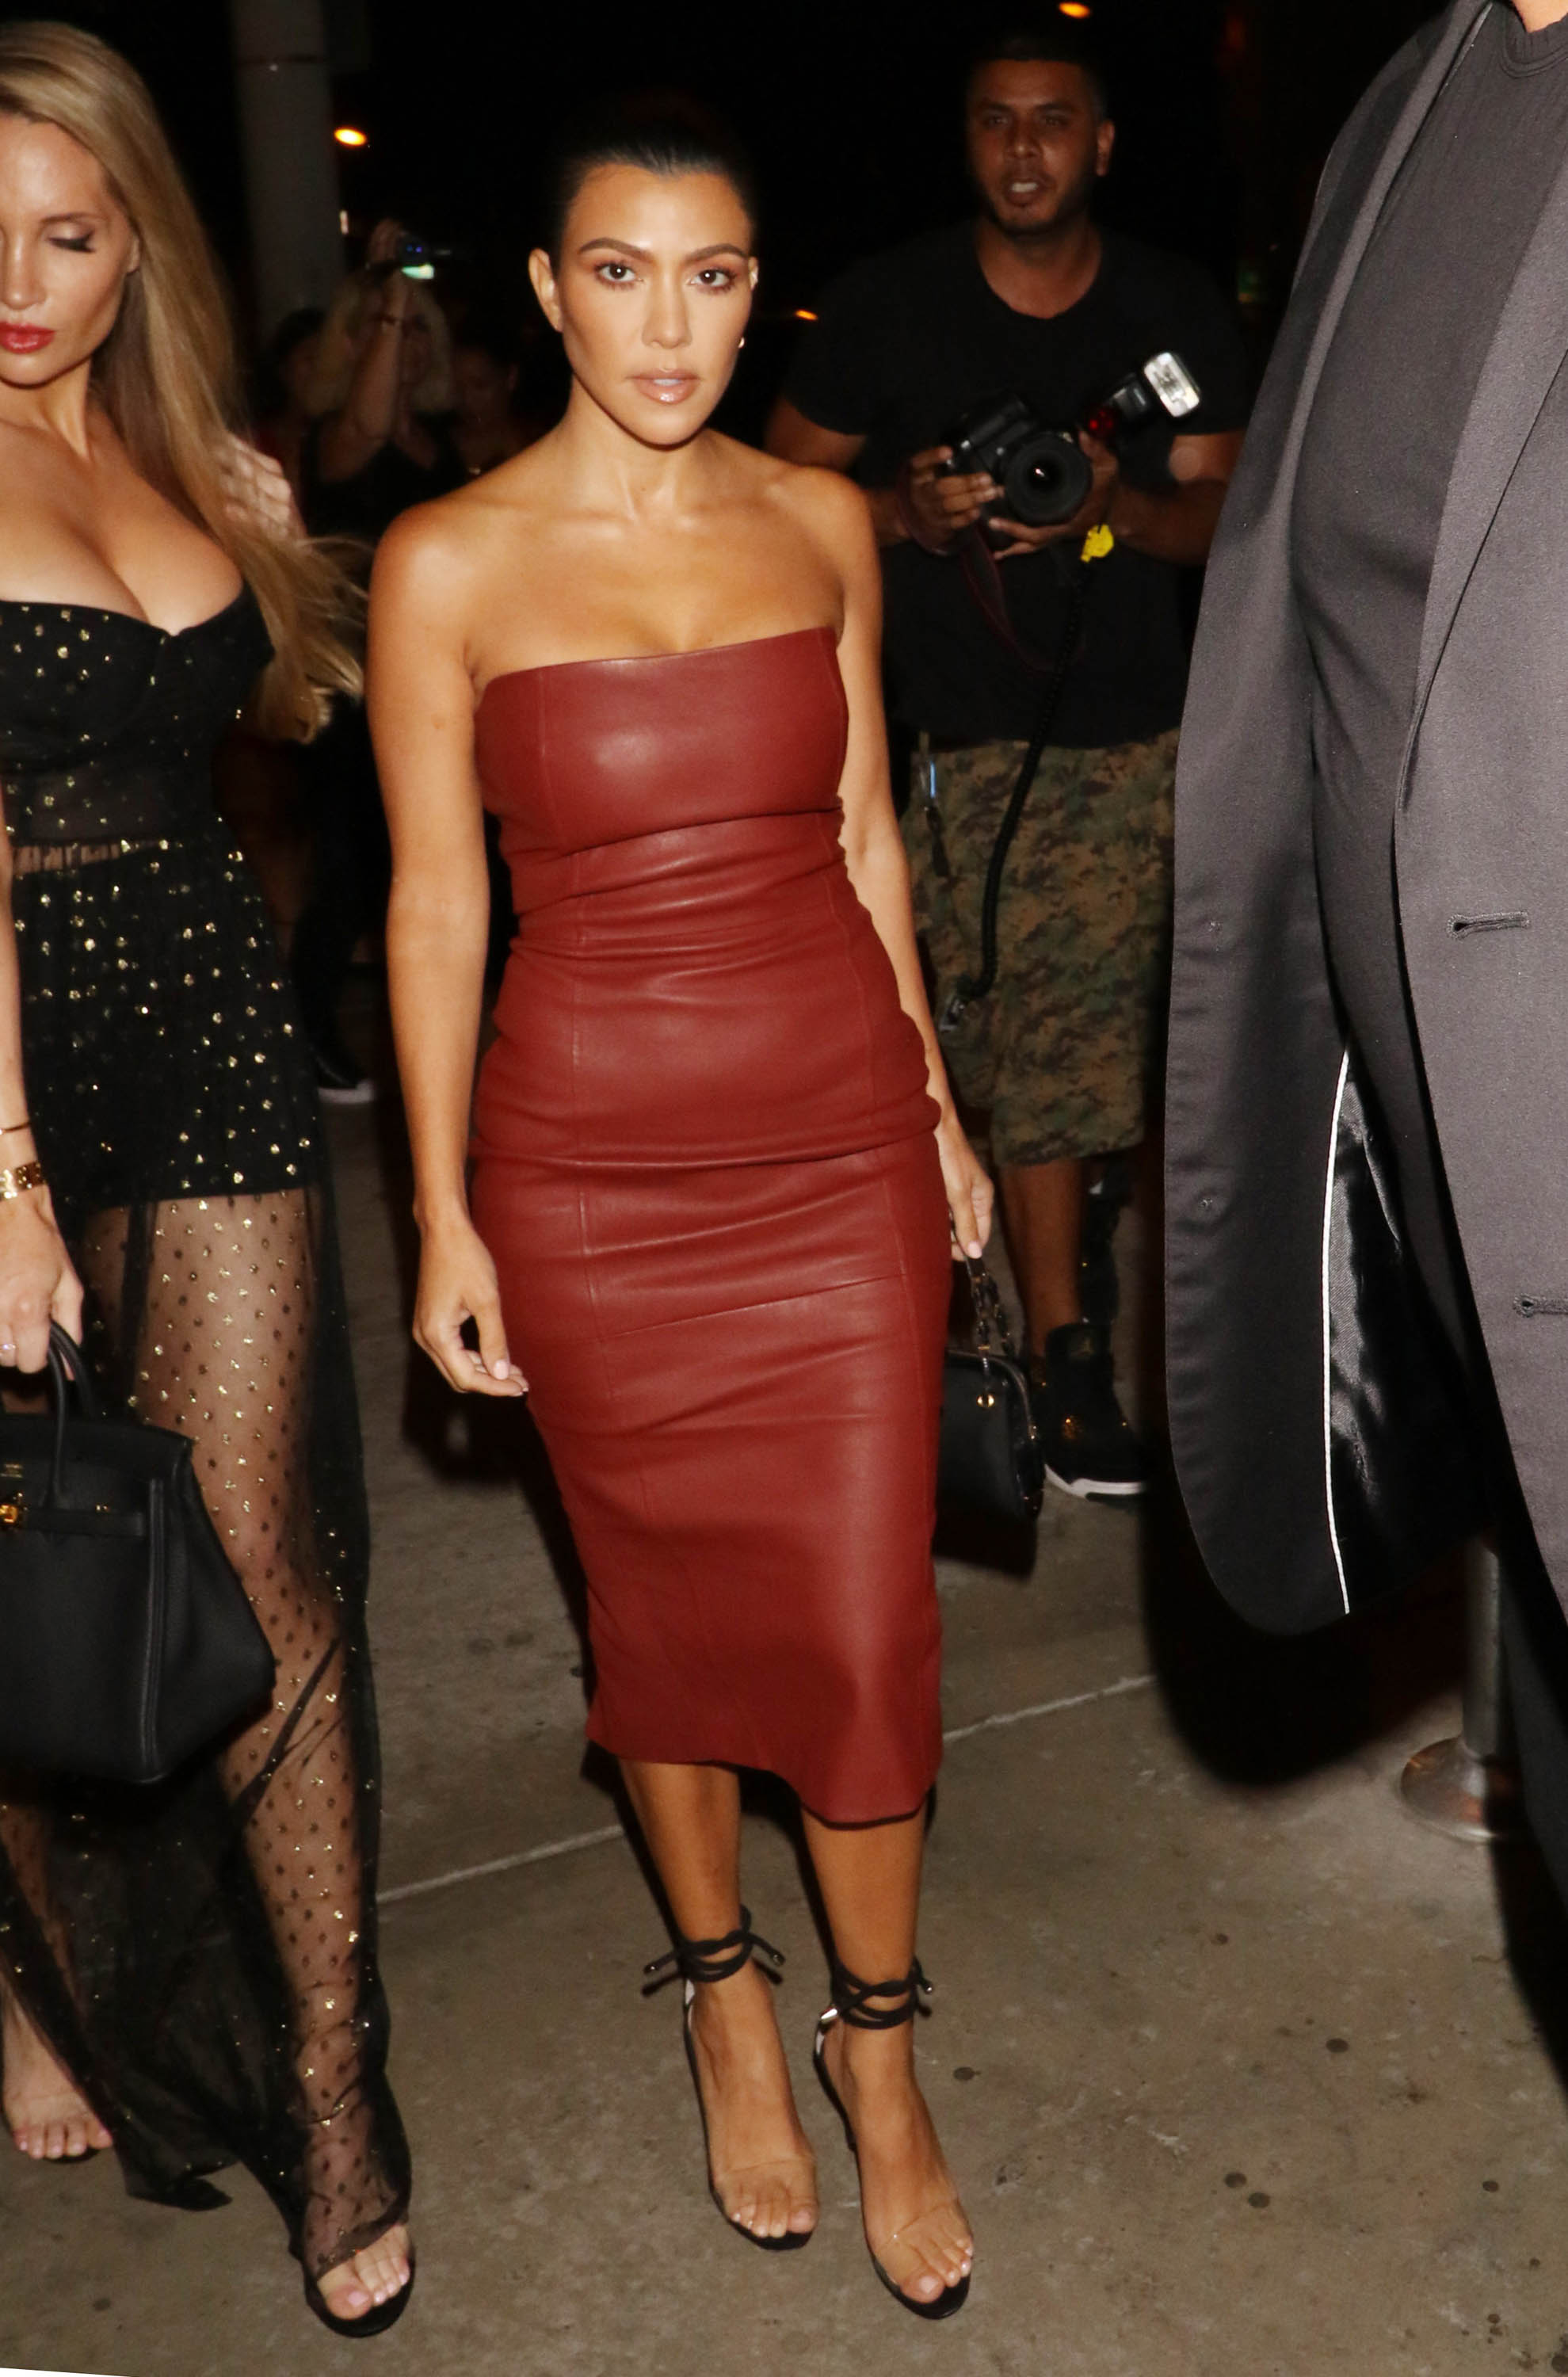 "<p>In the explosive first episode of the new series of <em>Keeping up with the Kardashians</em> we see sisters Kim and <a href=""http://https://style.nine.com.au/2018/07/09/14/01/kourntey-kardashian-sideboob"" target=""_blank"" title=""Kourtney Kardashian"" draggable=""false"">Kourtney Kardashian</a> in a very heated argument.</p> <p>Kim delivers the lowest blow when she tells her older sister that she's 'the least interesting to look at in the family'. Ouch.</p> <p>This comes the same week news broke of the reality TV's star split with toyboy boyfriend Younes Bendjima. It's been a rough week for Kourt.</p> <p>We happen to think the 39 year-old is one hot and <a href=""http://https://style.nine.com.au/2018/06/22/09/56/kourtney-kardashian-underwear"" target=""_blank"" title=""stylish mama"" draggable=""false"">stylish mama</a> who is in fact all kinds of interesting to look at.</p> <p>So much so, we have compiled our favourite red carpet images of the  star looking bangin', just to prove a point to Kimmy K (and to Bendjima). Let's hope she's reading.</p>"